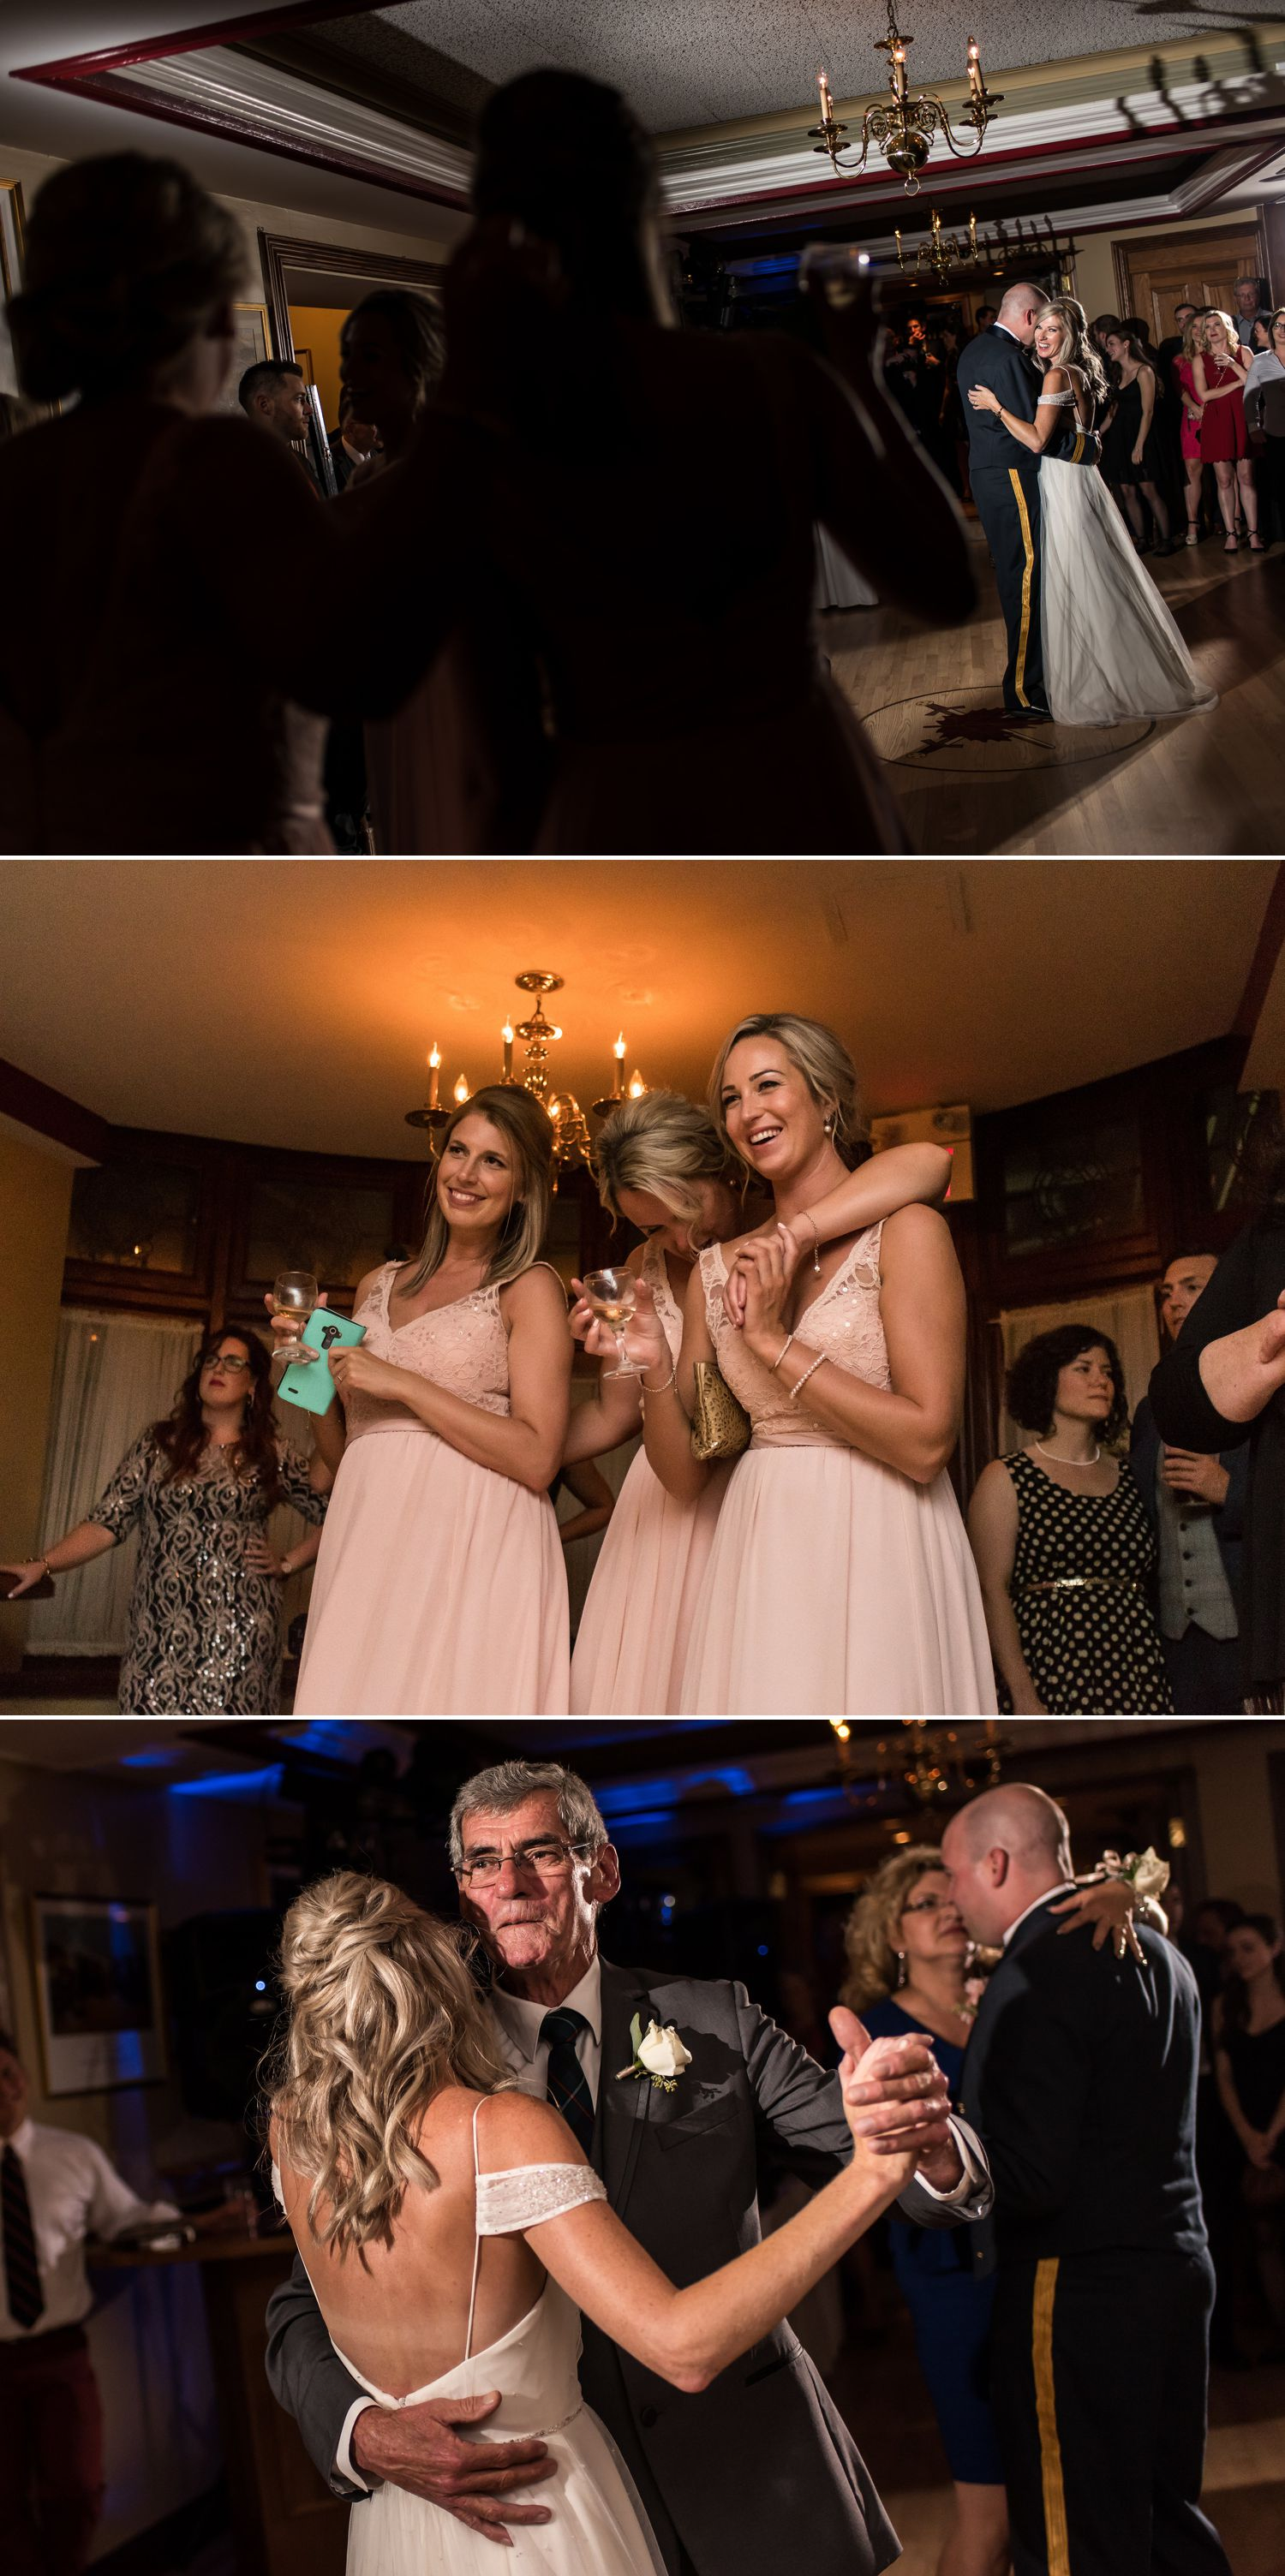 dance floor moments at an army mess wedding in ottawa ontario